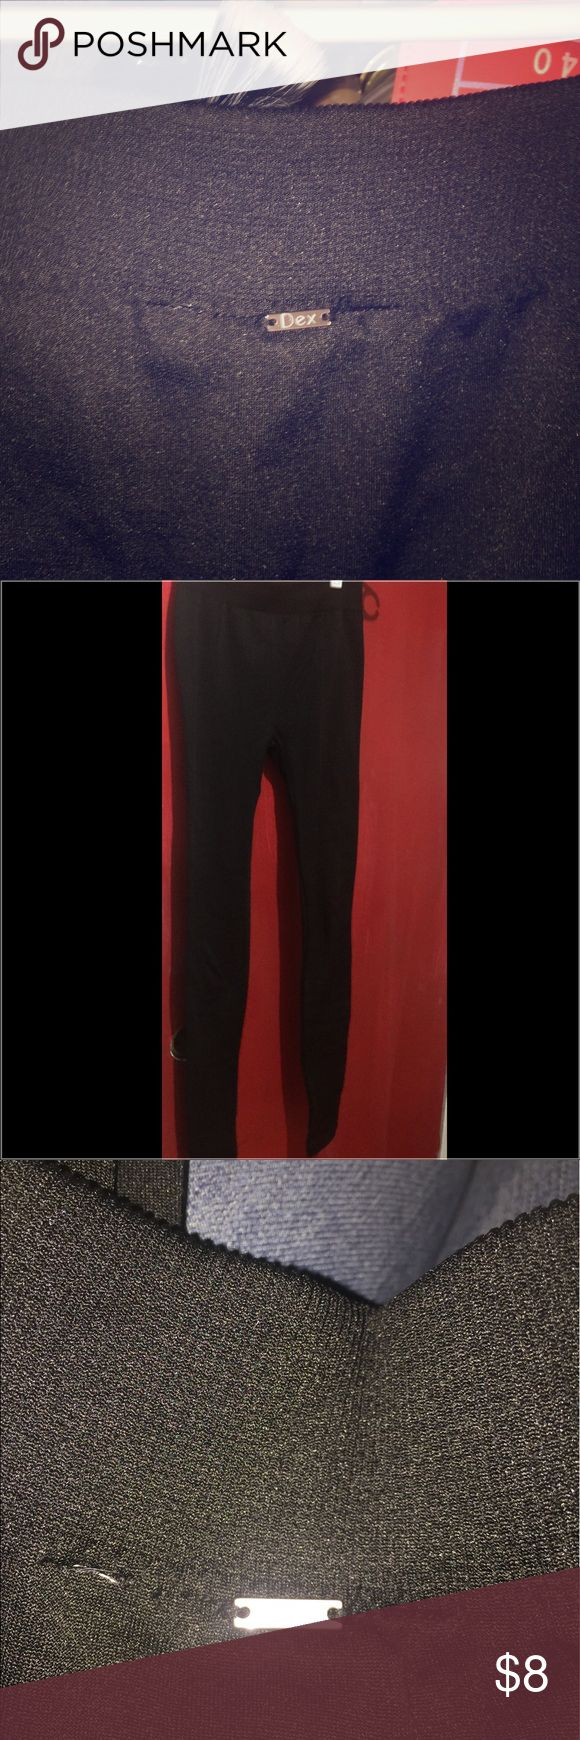 NWOT-Designer Black Fleece Lined Leggings ❤ NWOT-Dex-Jet.Black luxury fleece lined leggings ❤ Super black and super comfy! My two favorite things!! 😍😍 These leggings feel amazing on your skin!! I had to upsize because I'm a fat ass but these are ready for the taking!! Bundle & Save!! 😀😍❤ Dex Pants Leggings